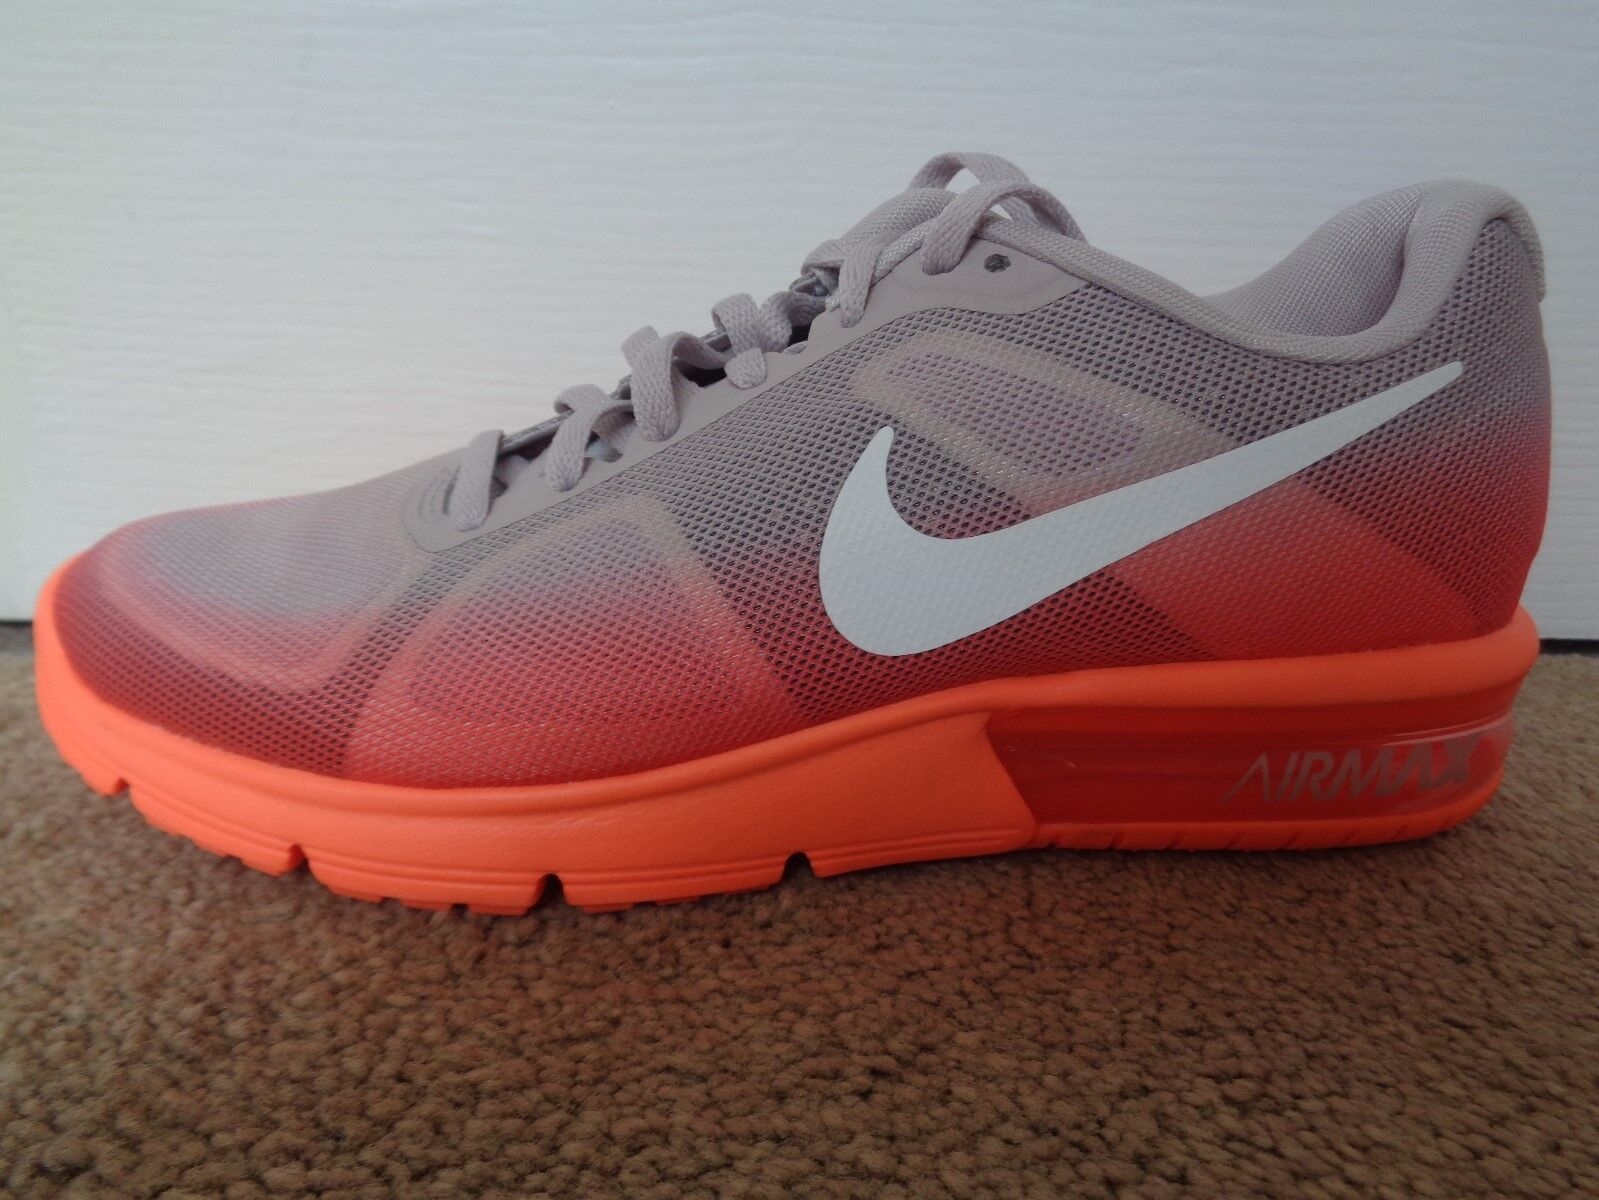 Nike Air Max Sequent trainers shoes 719916 38 802 uk 4.5 eu 38 719916 us 7 NEW IN BOX 0e94e1